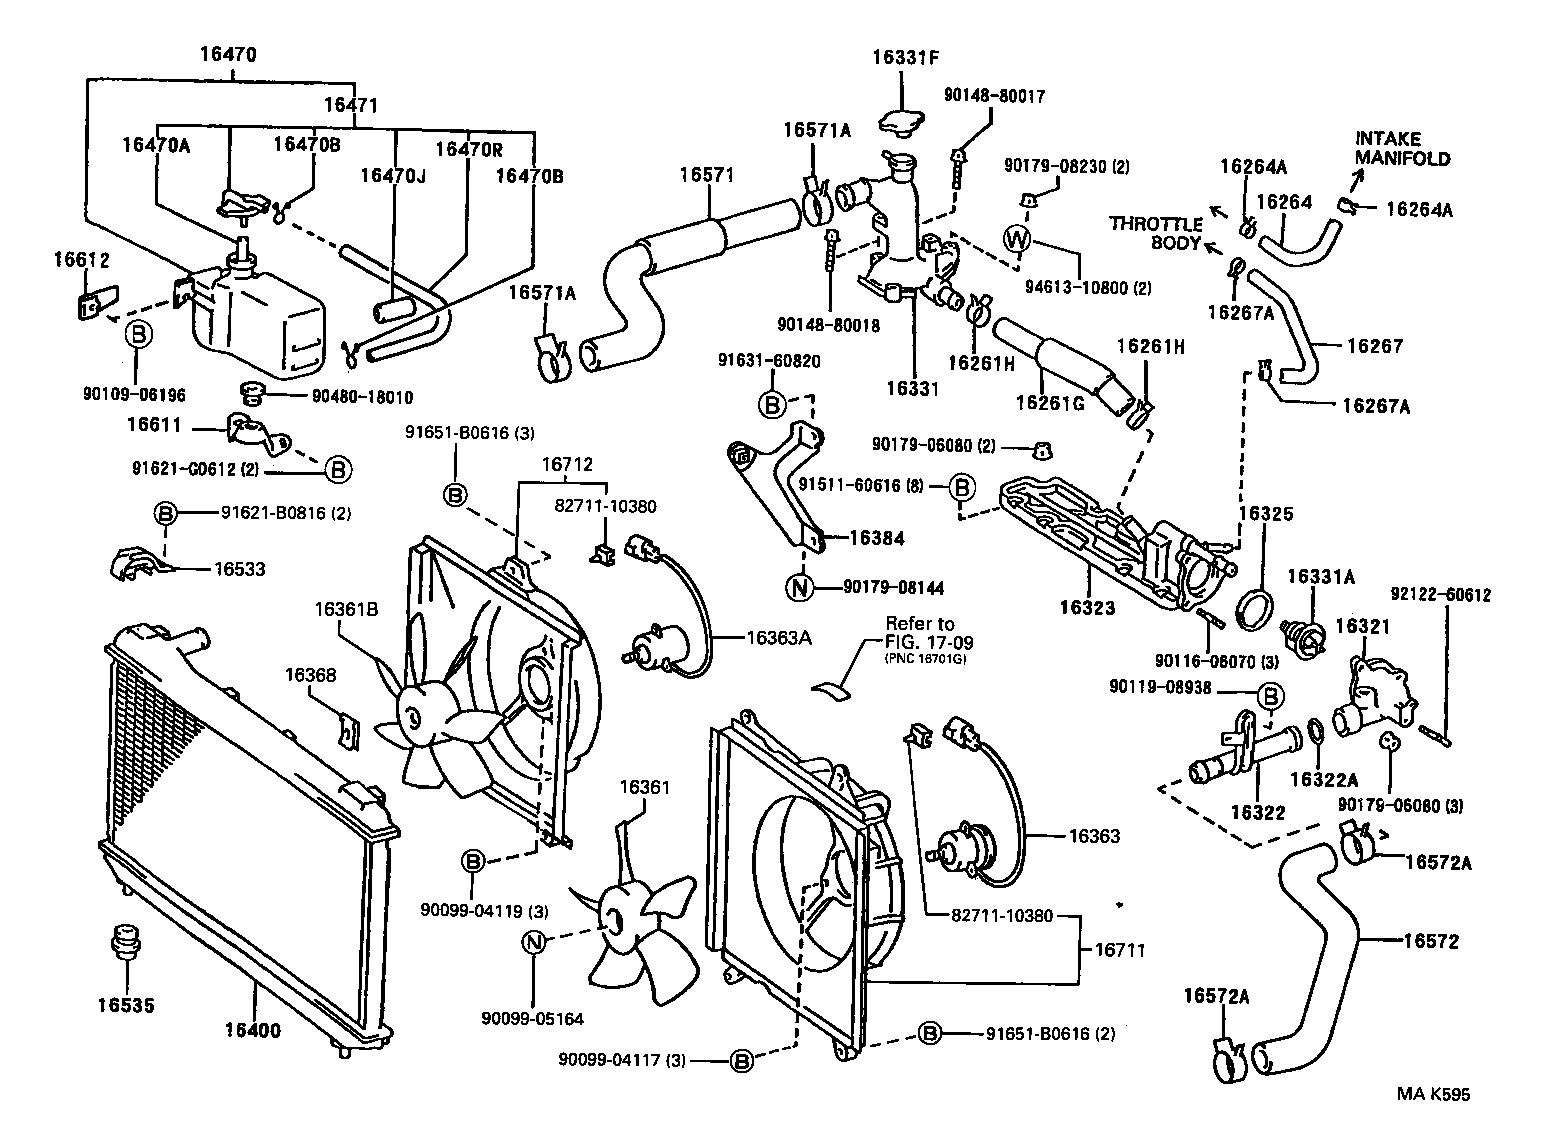 toyota 1mz fe engine diagram - wiring diagram and arch-lake-a -  arch-lake-a.rennella.it  arch-lake-a.rennella.it